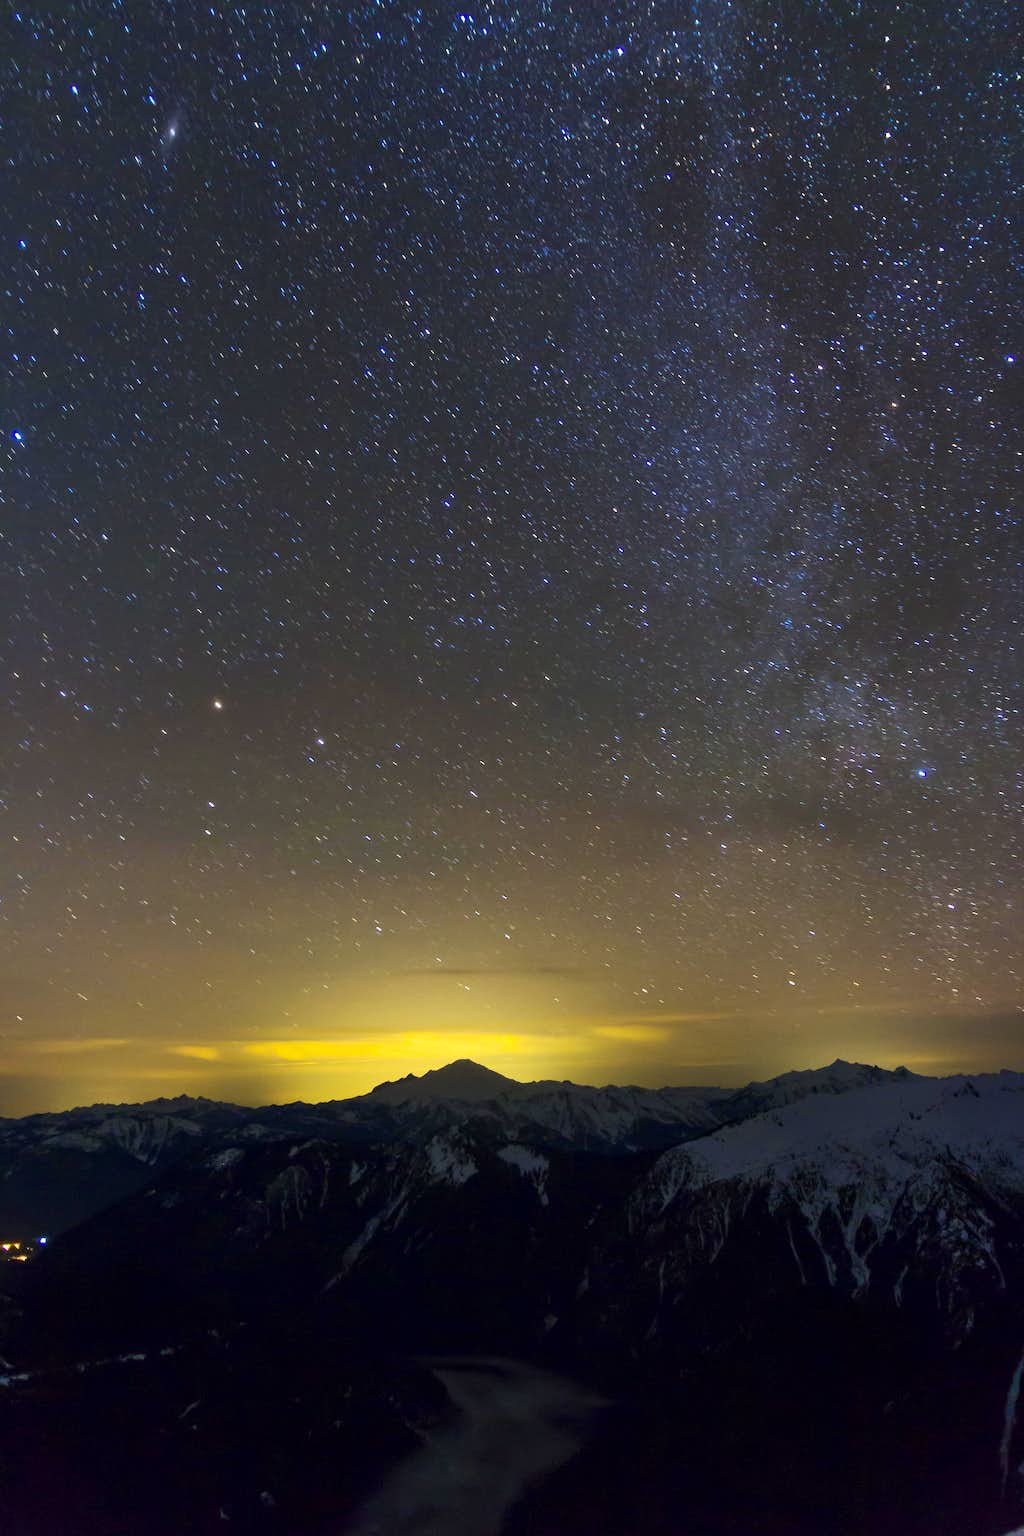 Mt. Baker and the Milky Way